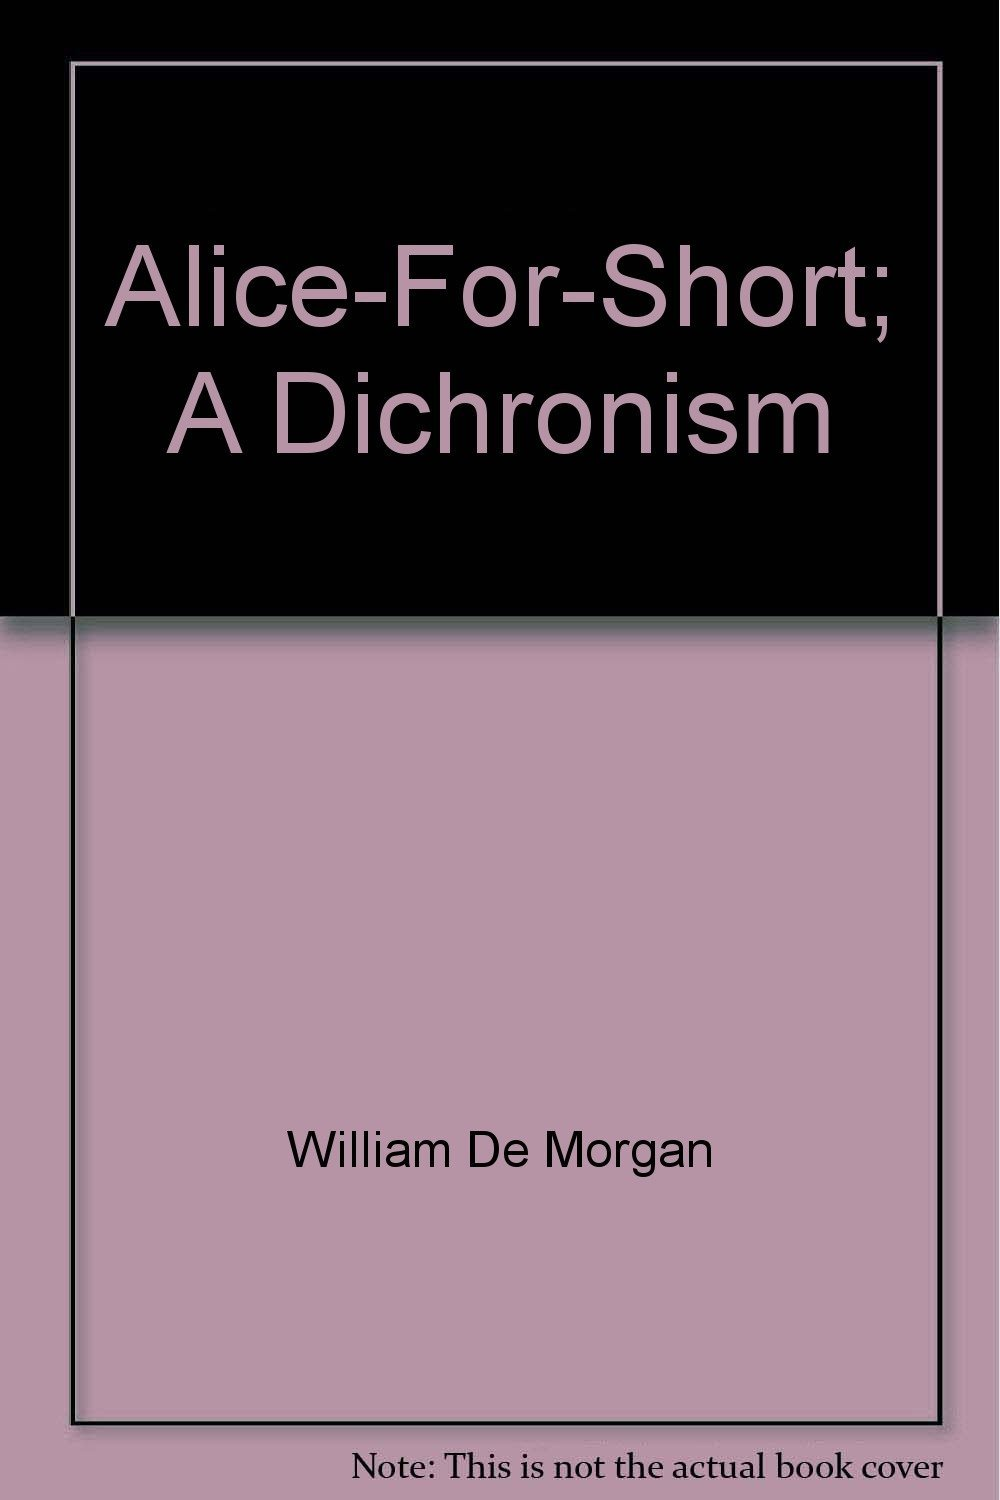 Alice-For-Short [Hardcover] [Jan 01, 1907] de Morgan, William